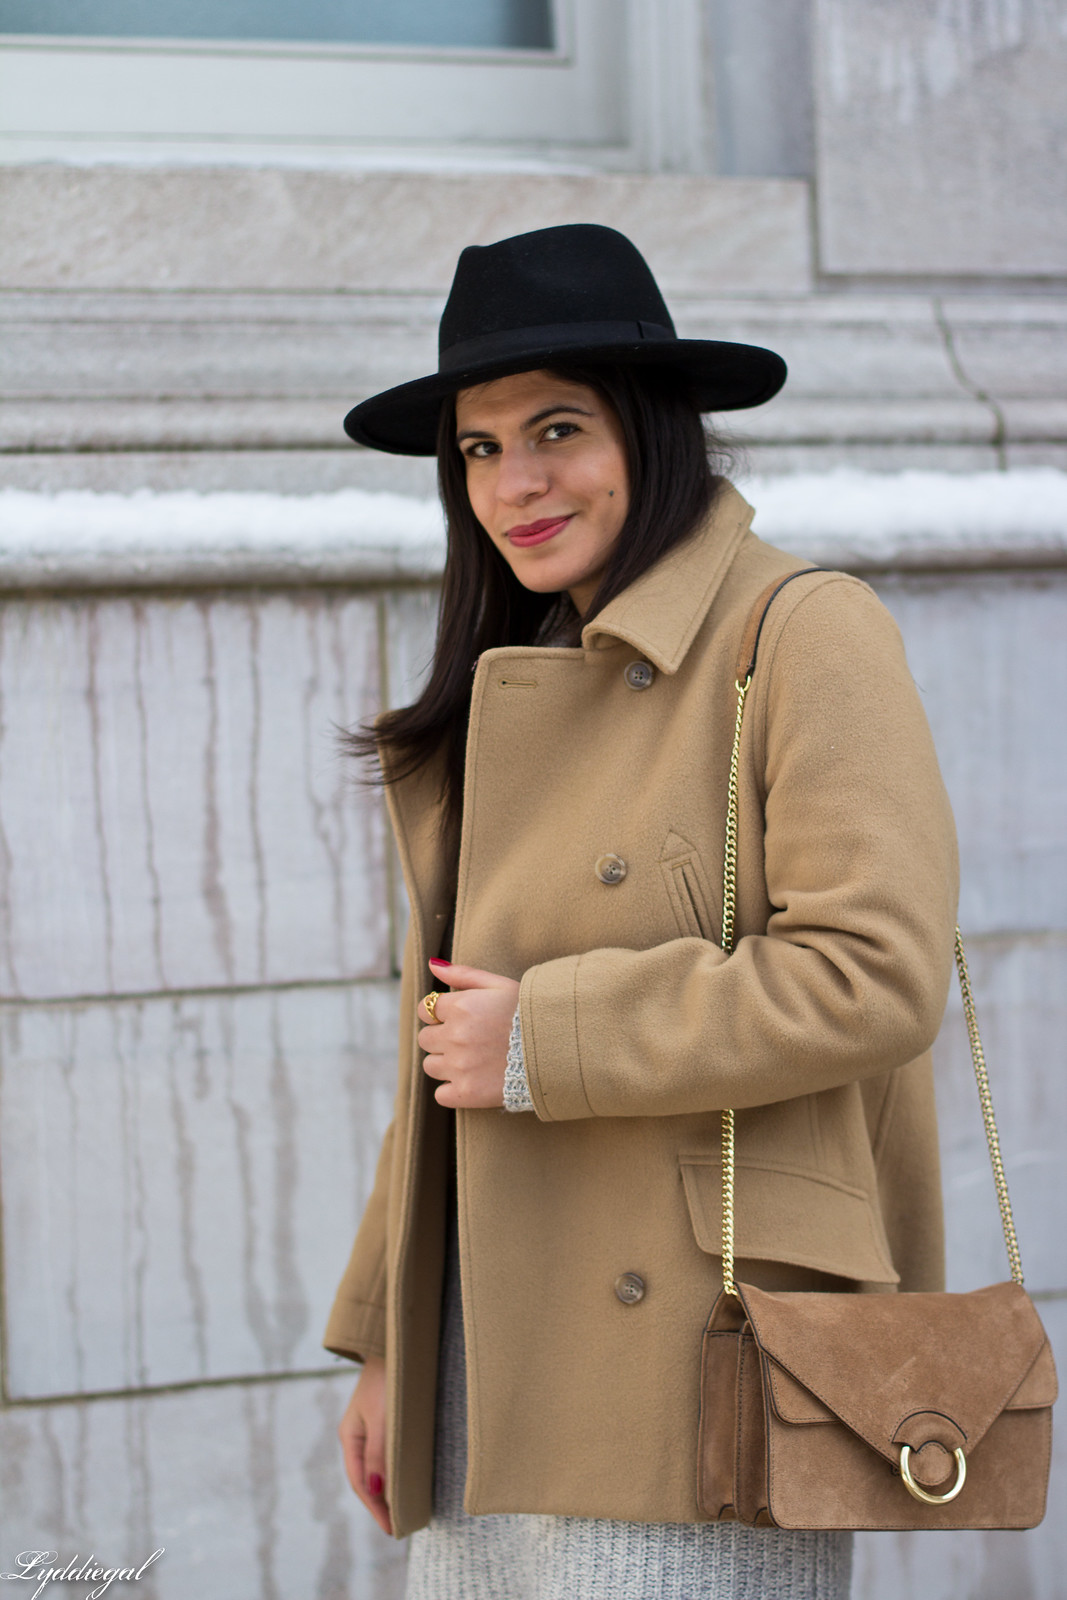 grey sweater dress, camel peacoat, black boots, winter outfit-7.jpg